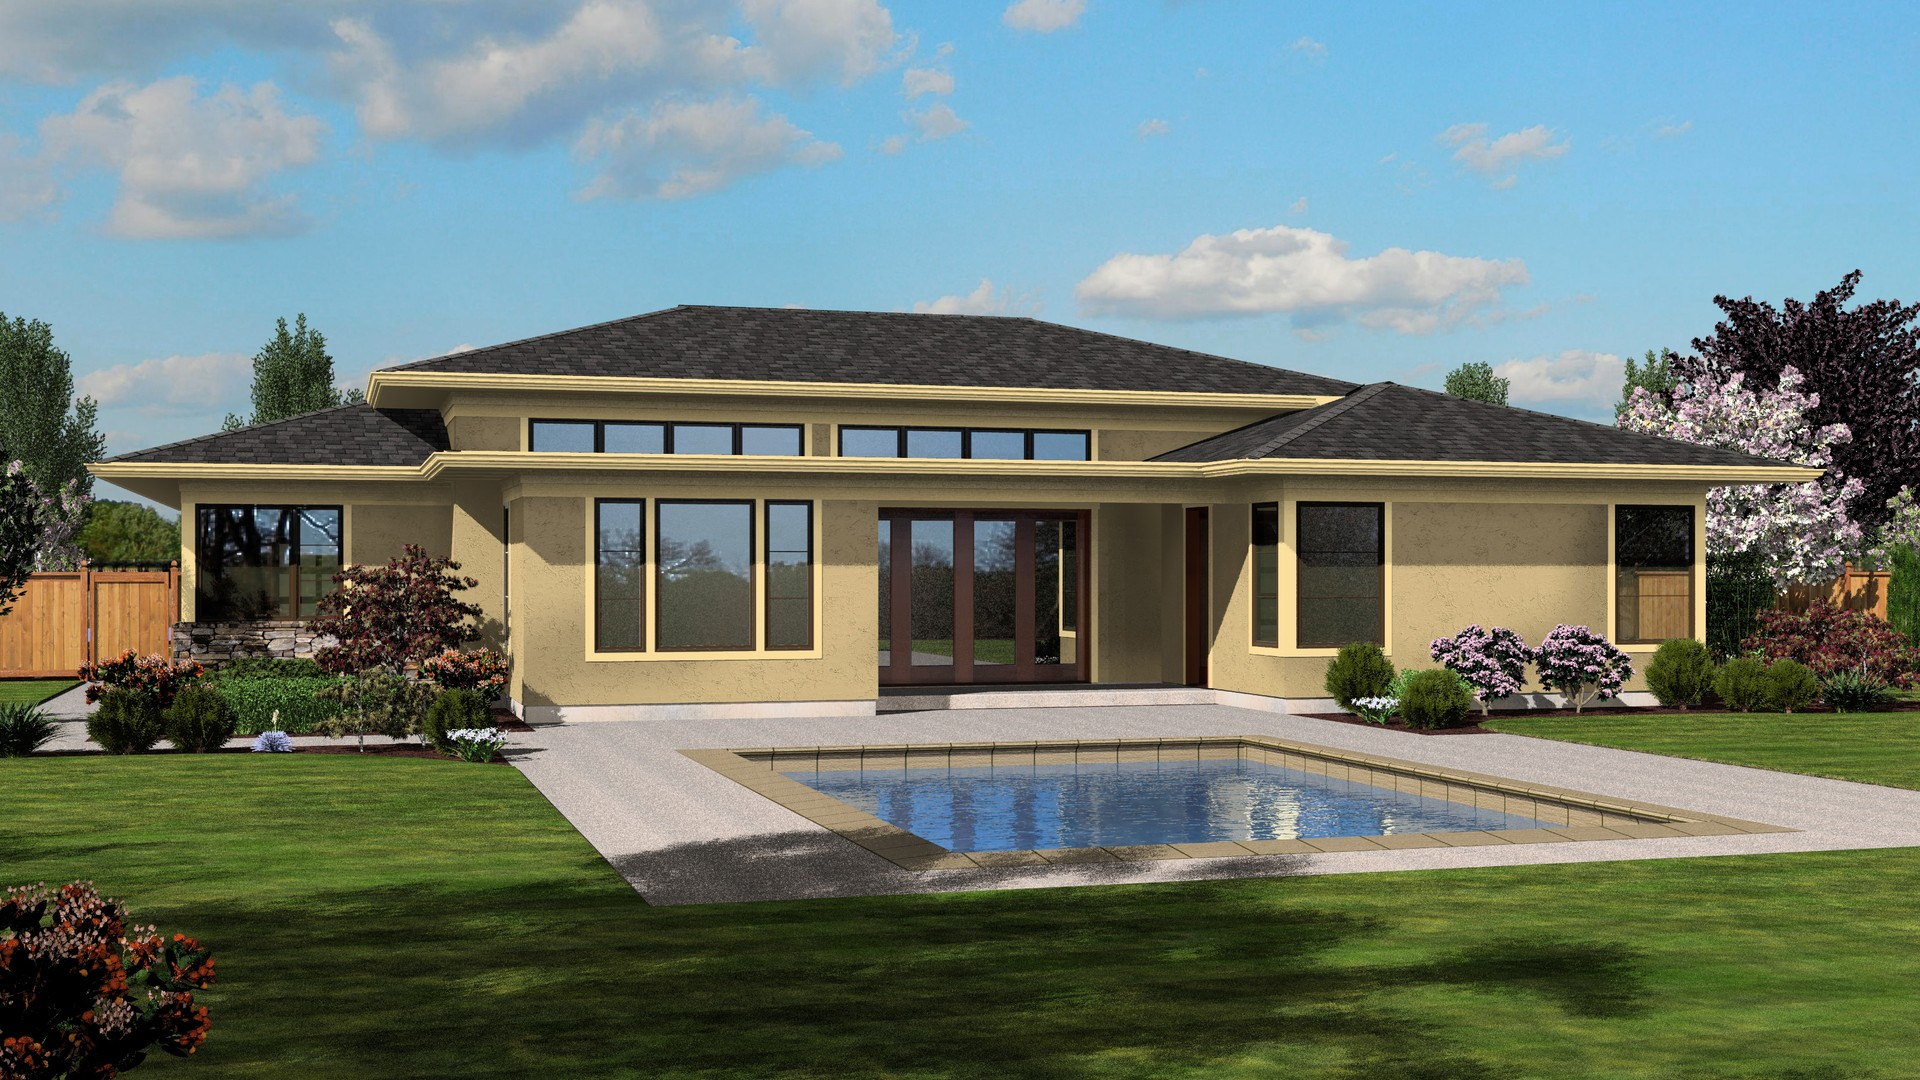 Contemporary House Plan 1245 The Riverside 2334 Sqft 4